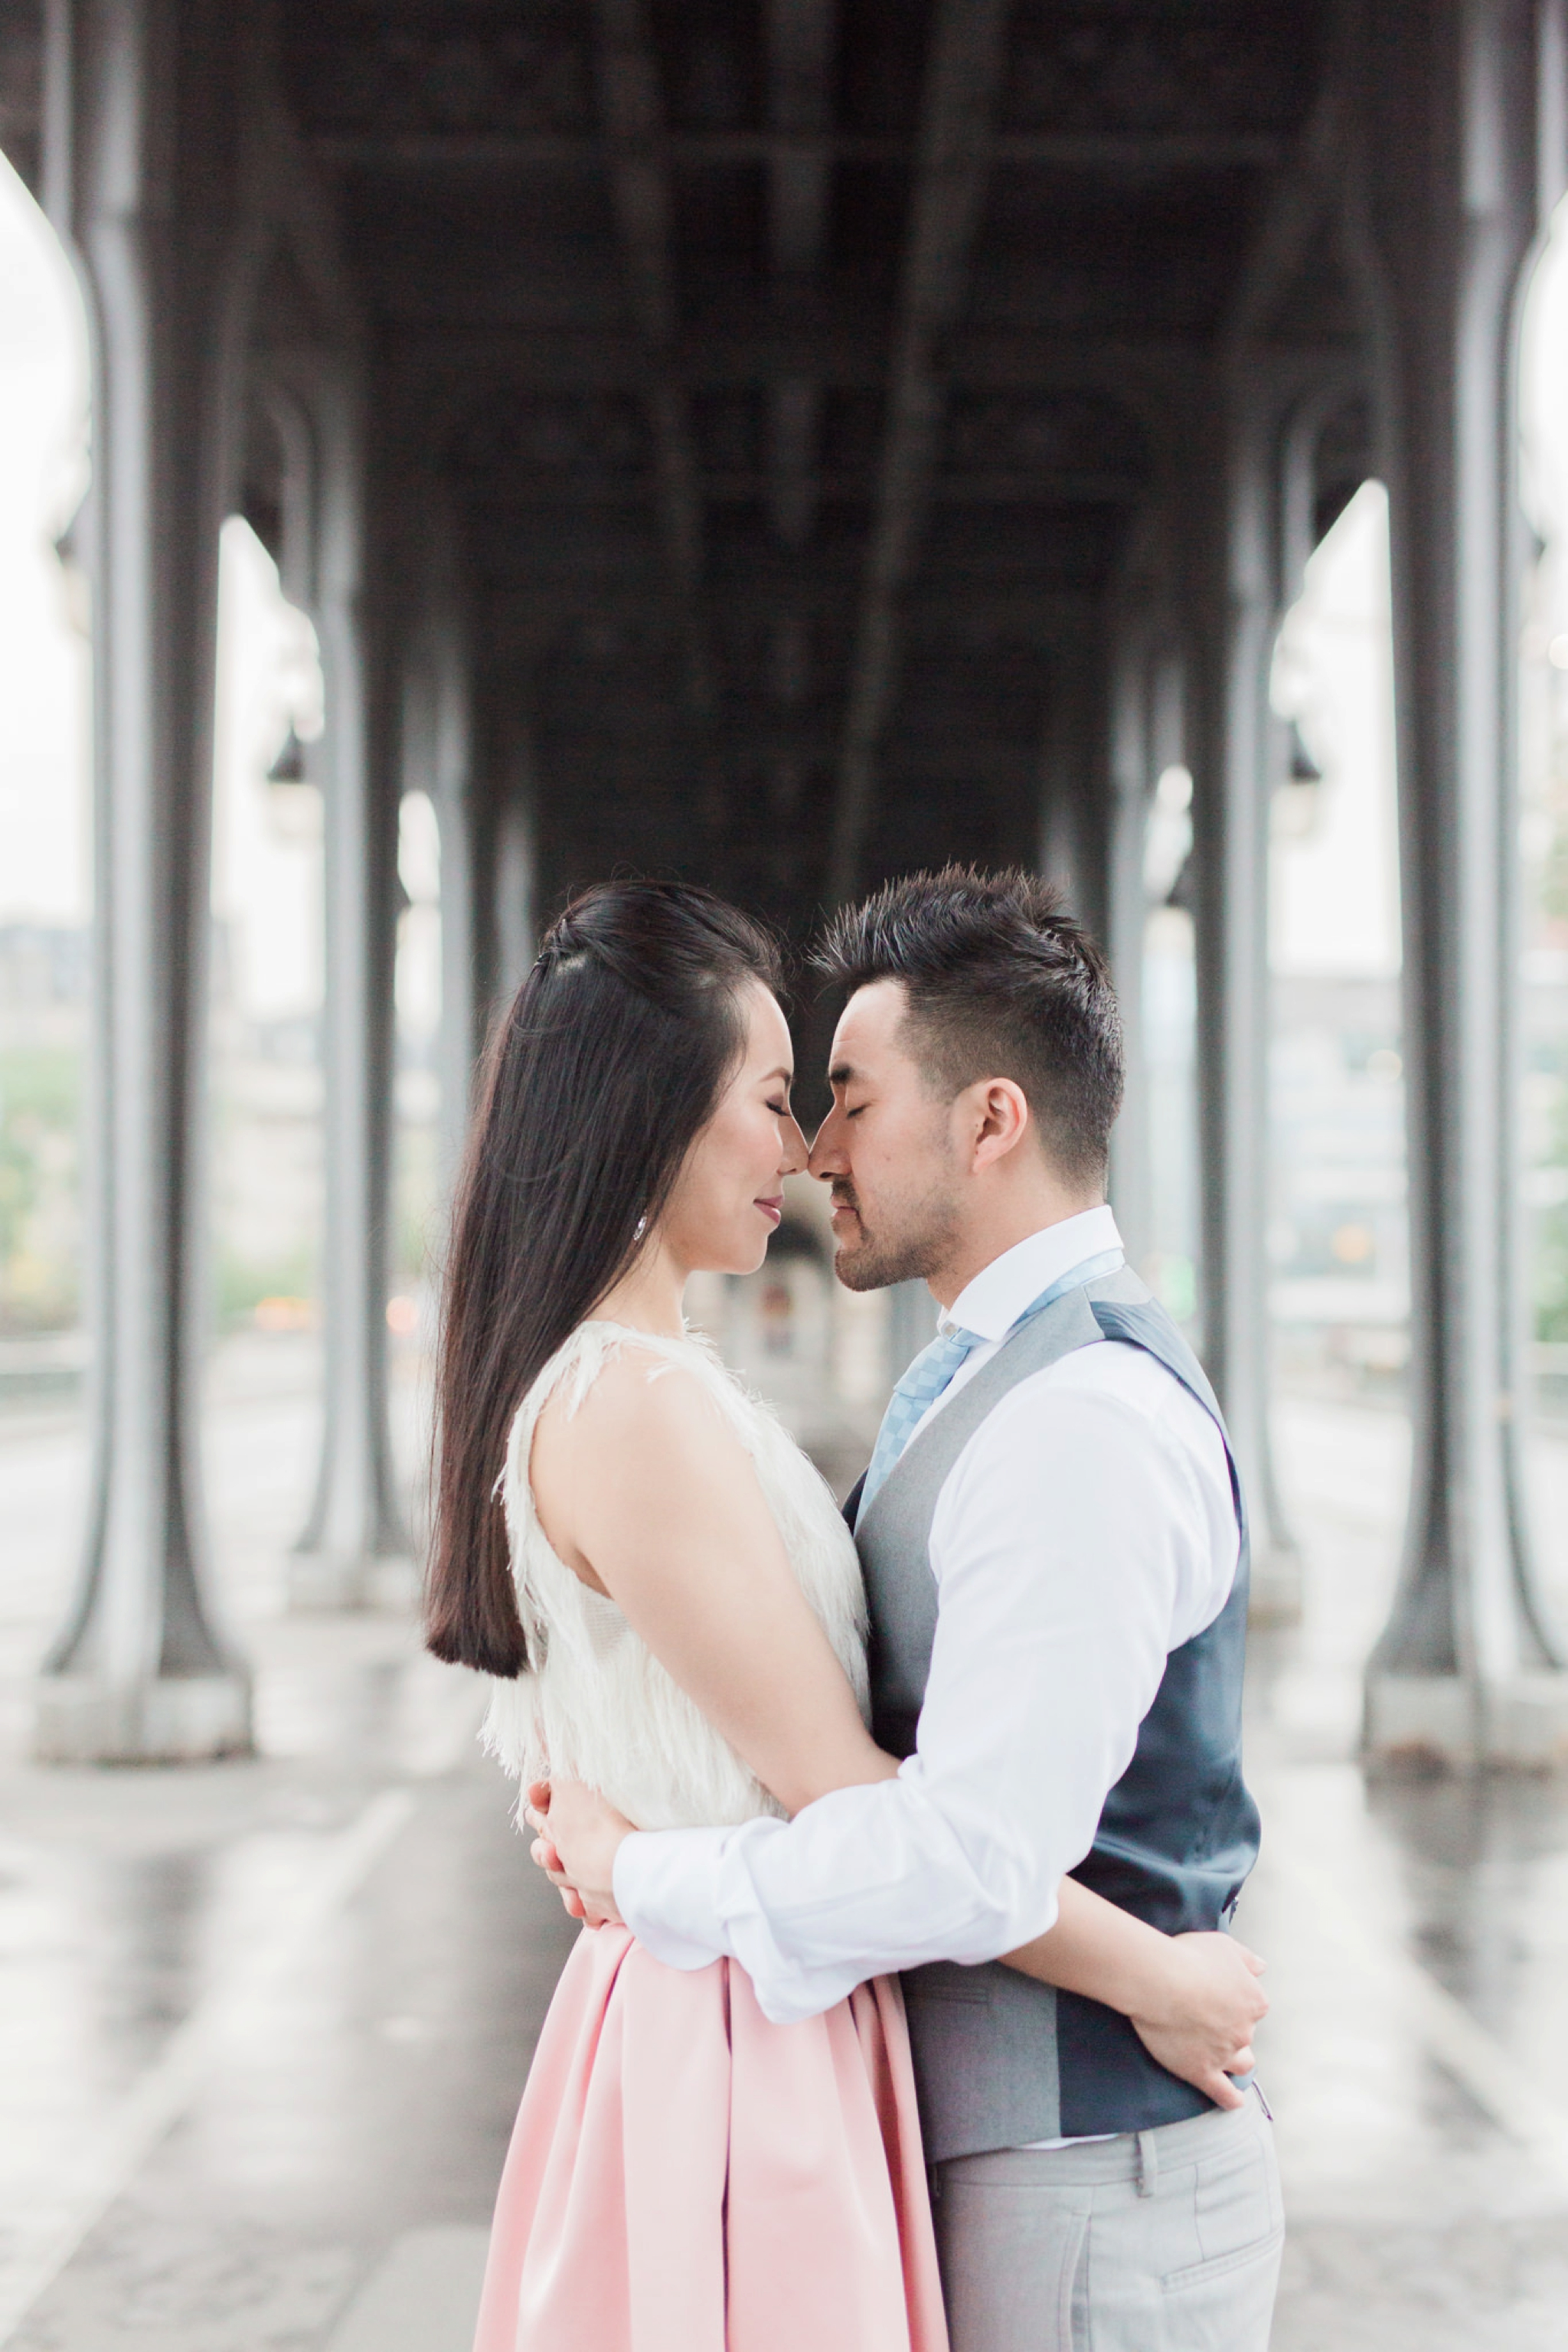 Suzanne_li_photography_paris_engagement_shoot_0018.jpg